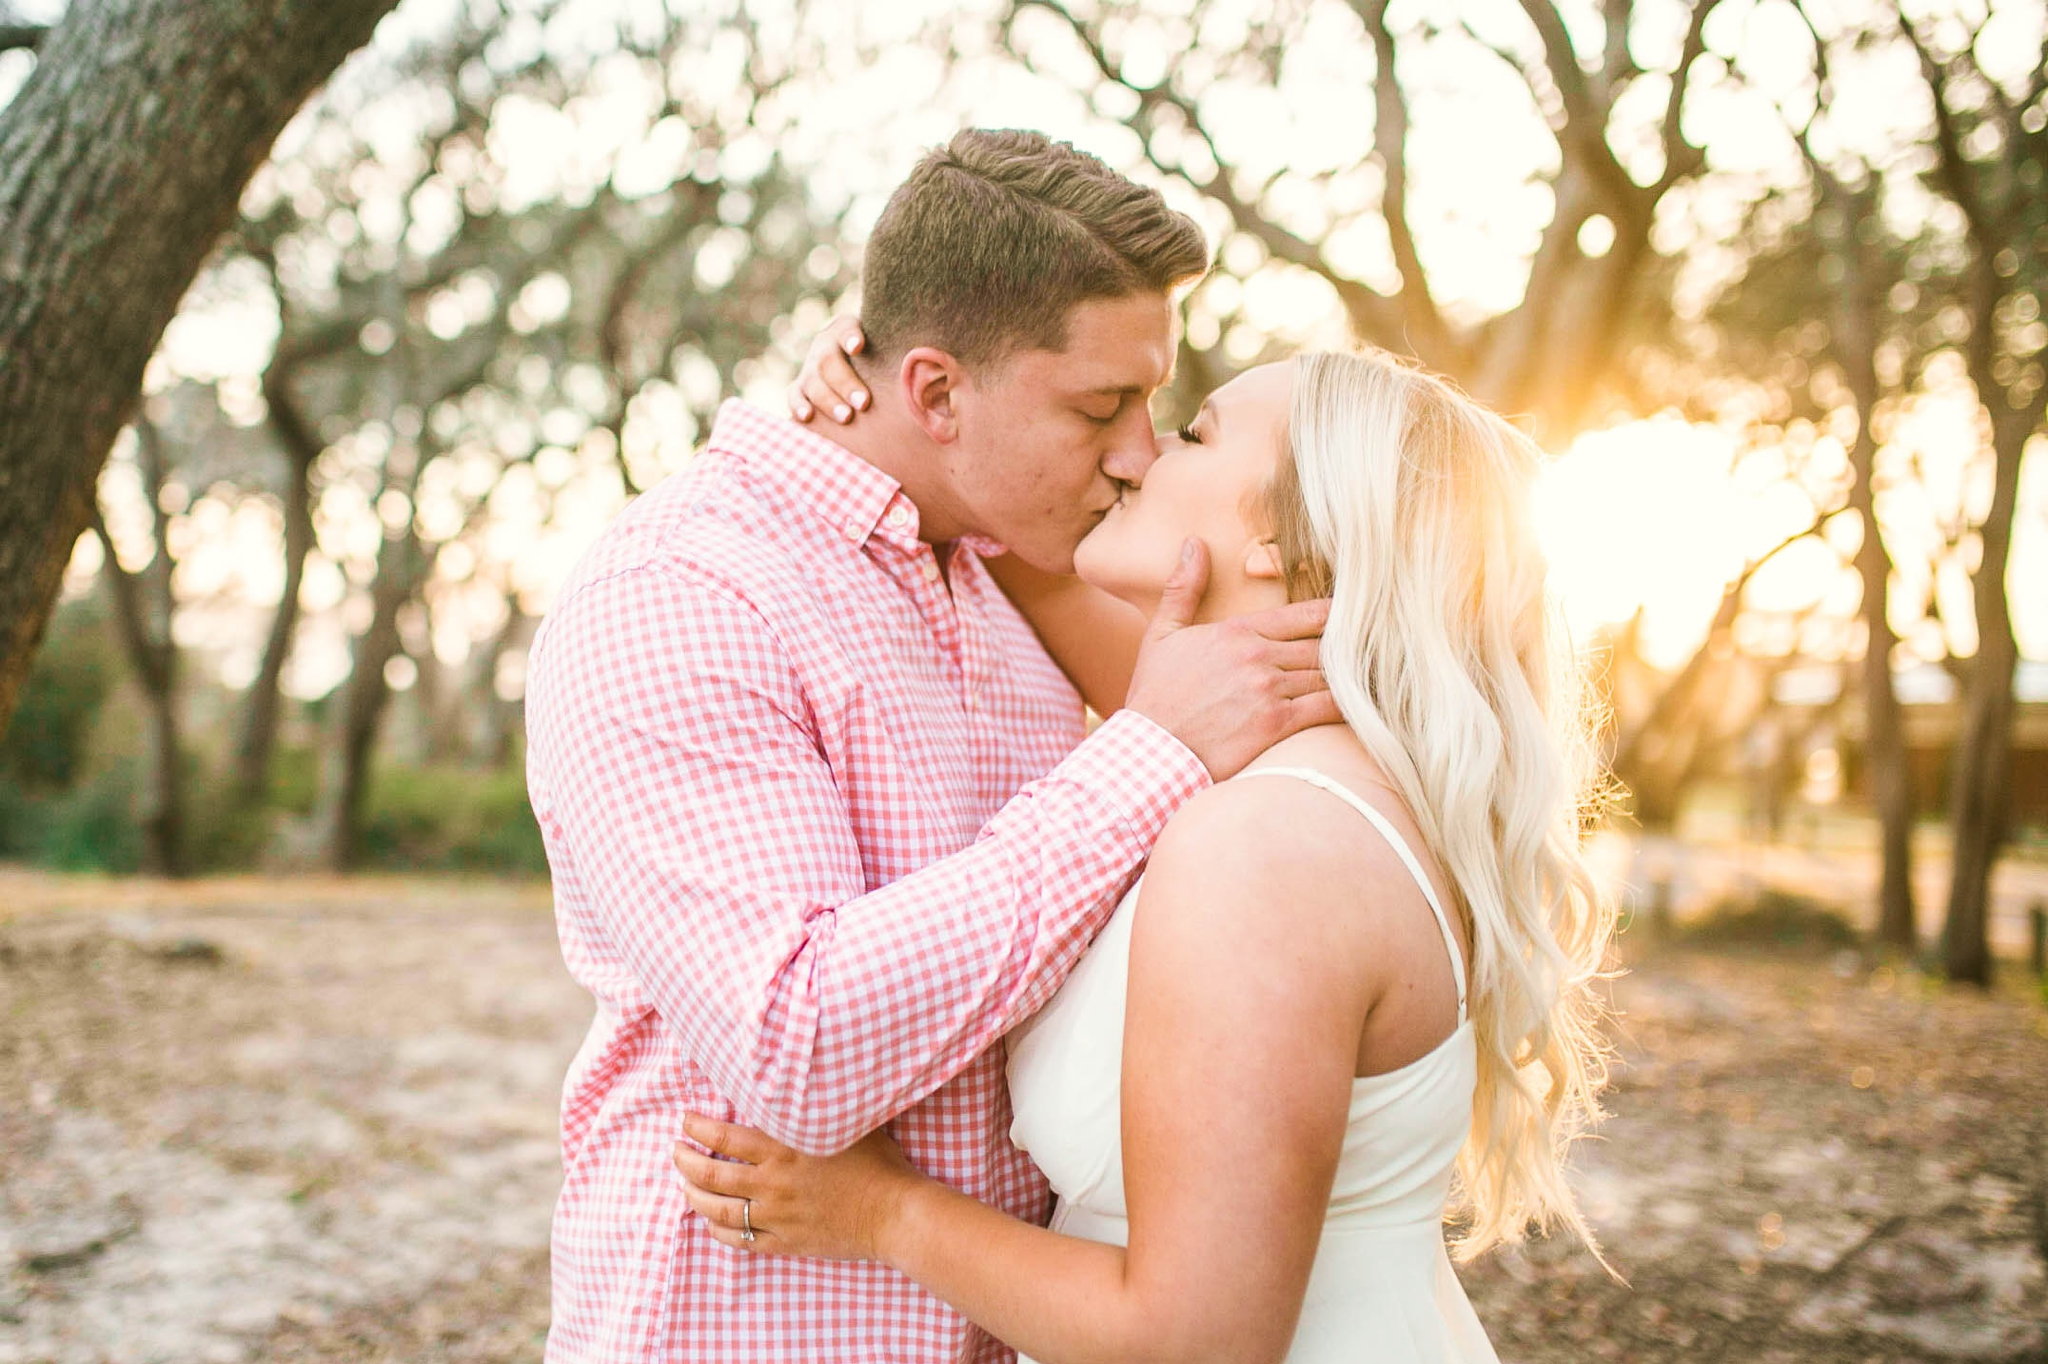 Engagement Photography Session beneath tropical trees at sunset during golden hour light -  man kissing his fiance - girl is wearing a white flowy maxi dress from lulus - Honolulu Oahu Hawaii Wedding Photographer - Johanna Dye